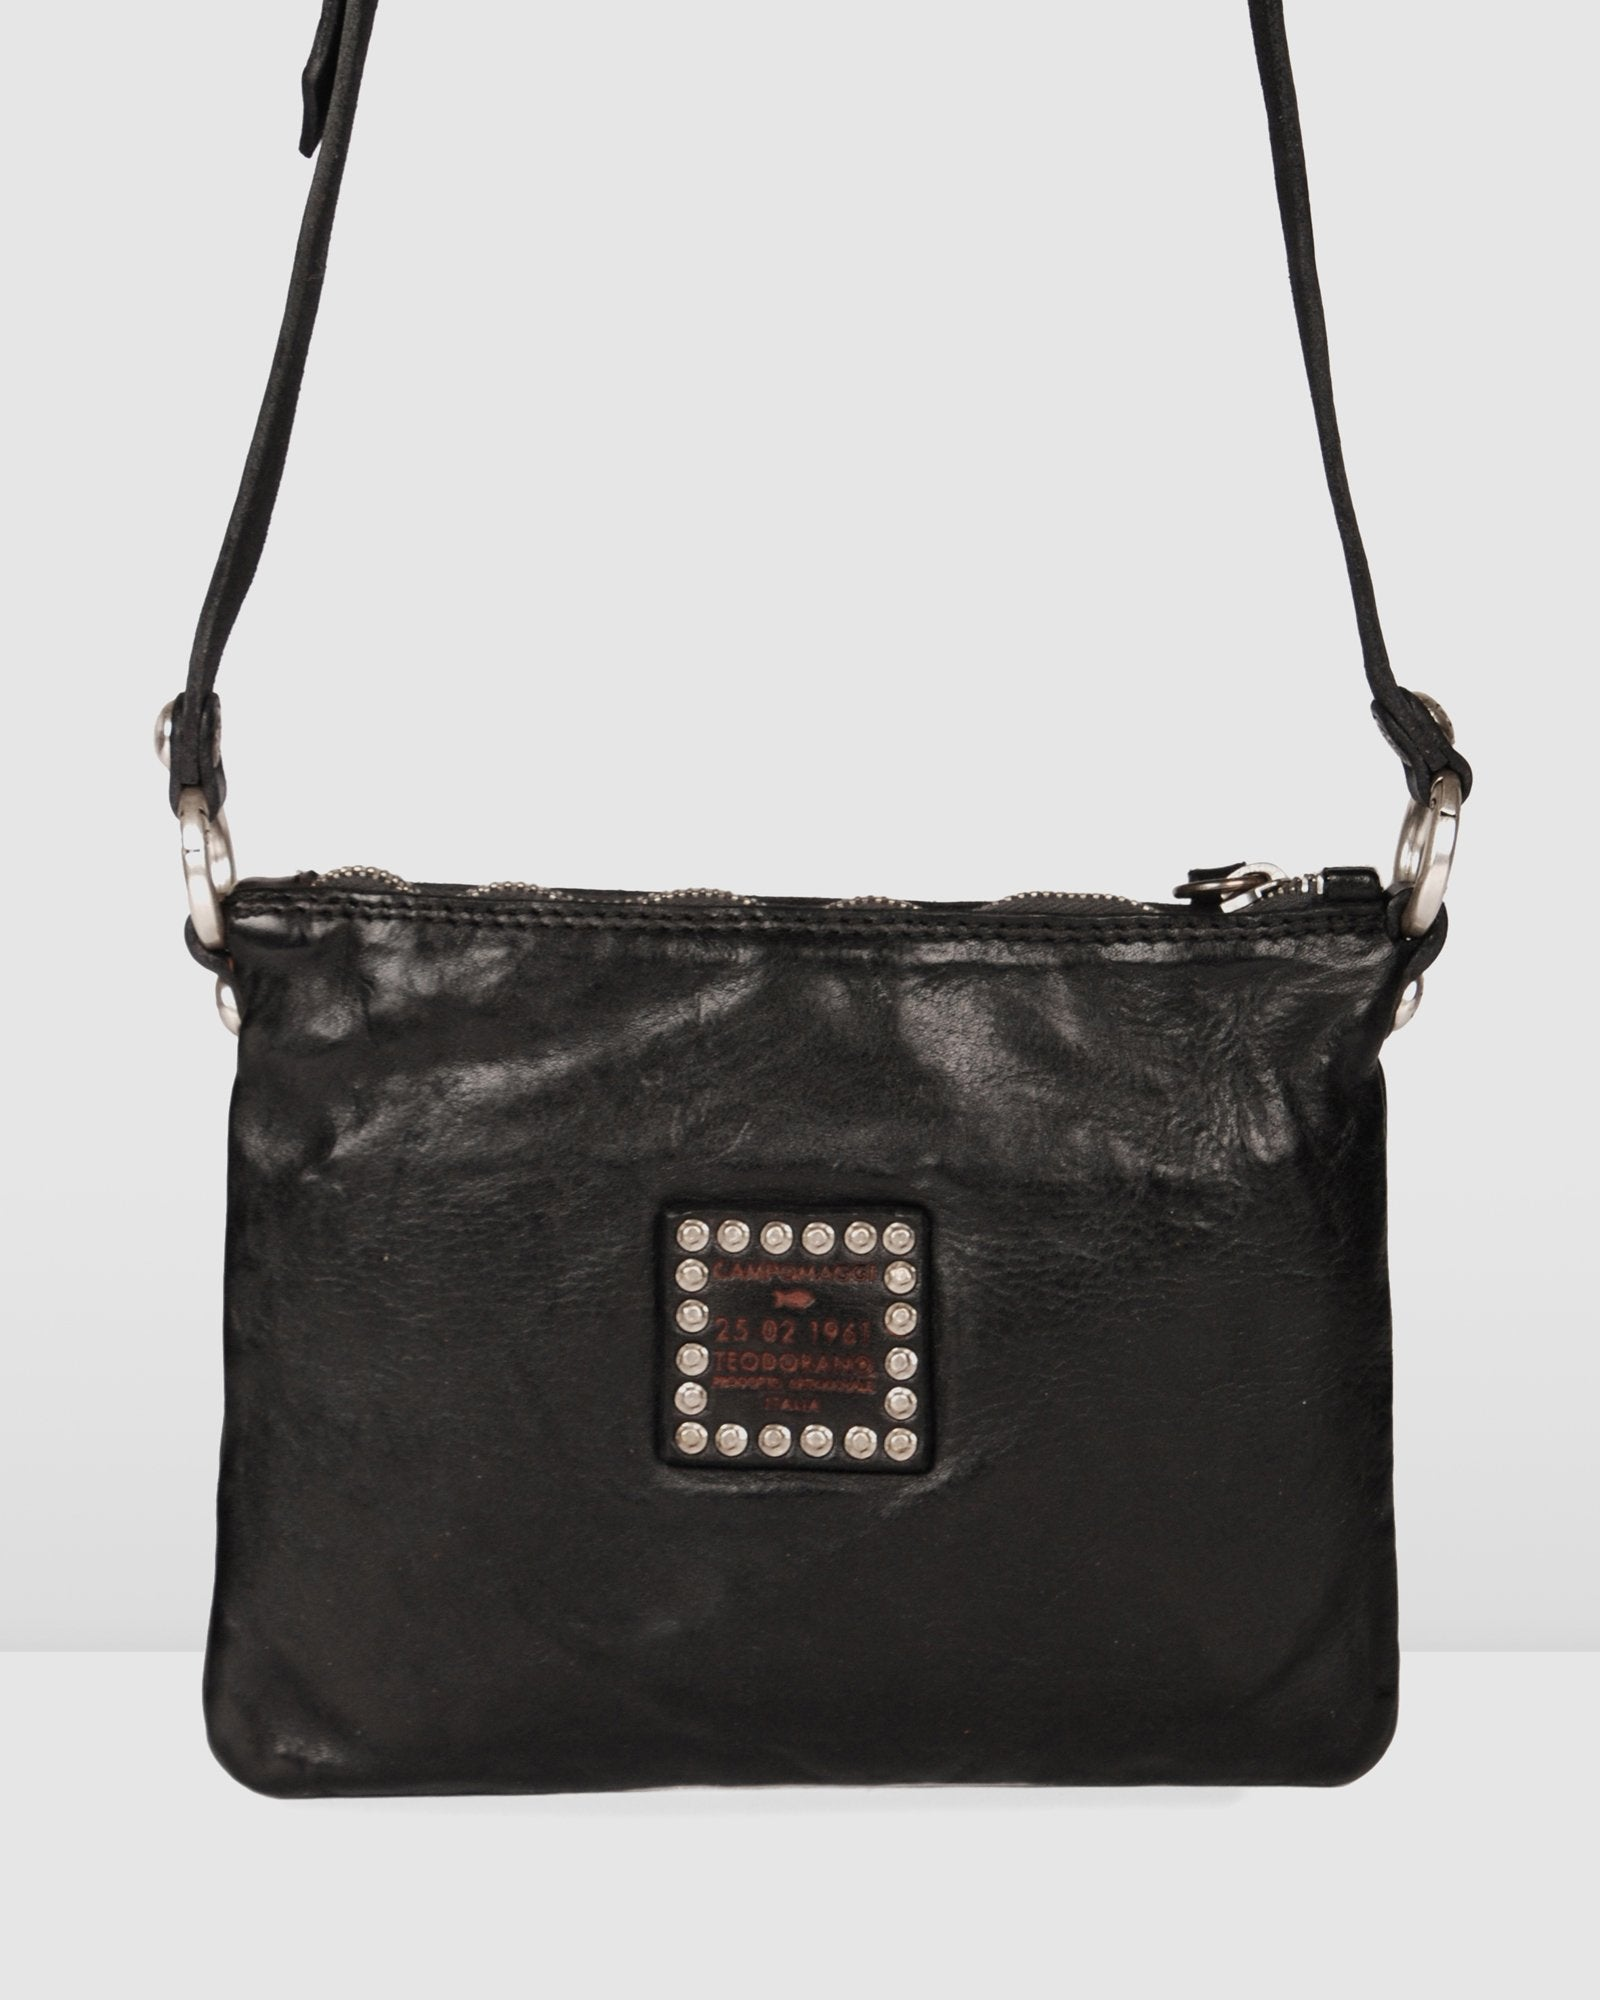 CAMPOMAGGI JOPLIN CROSS BODY BAG BLACK LEATHER